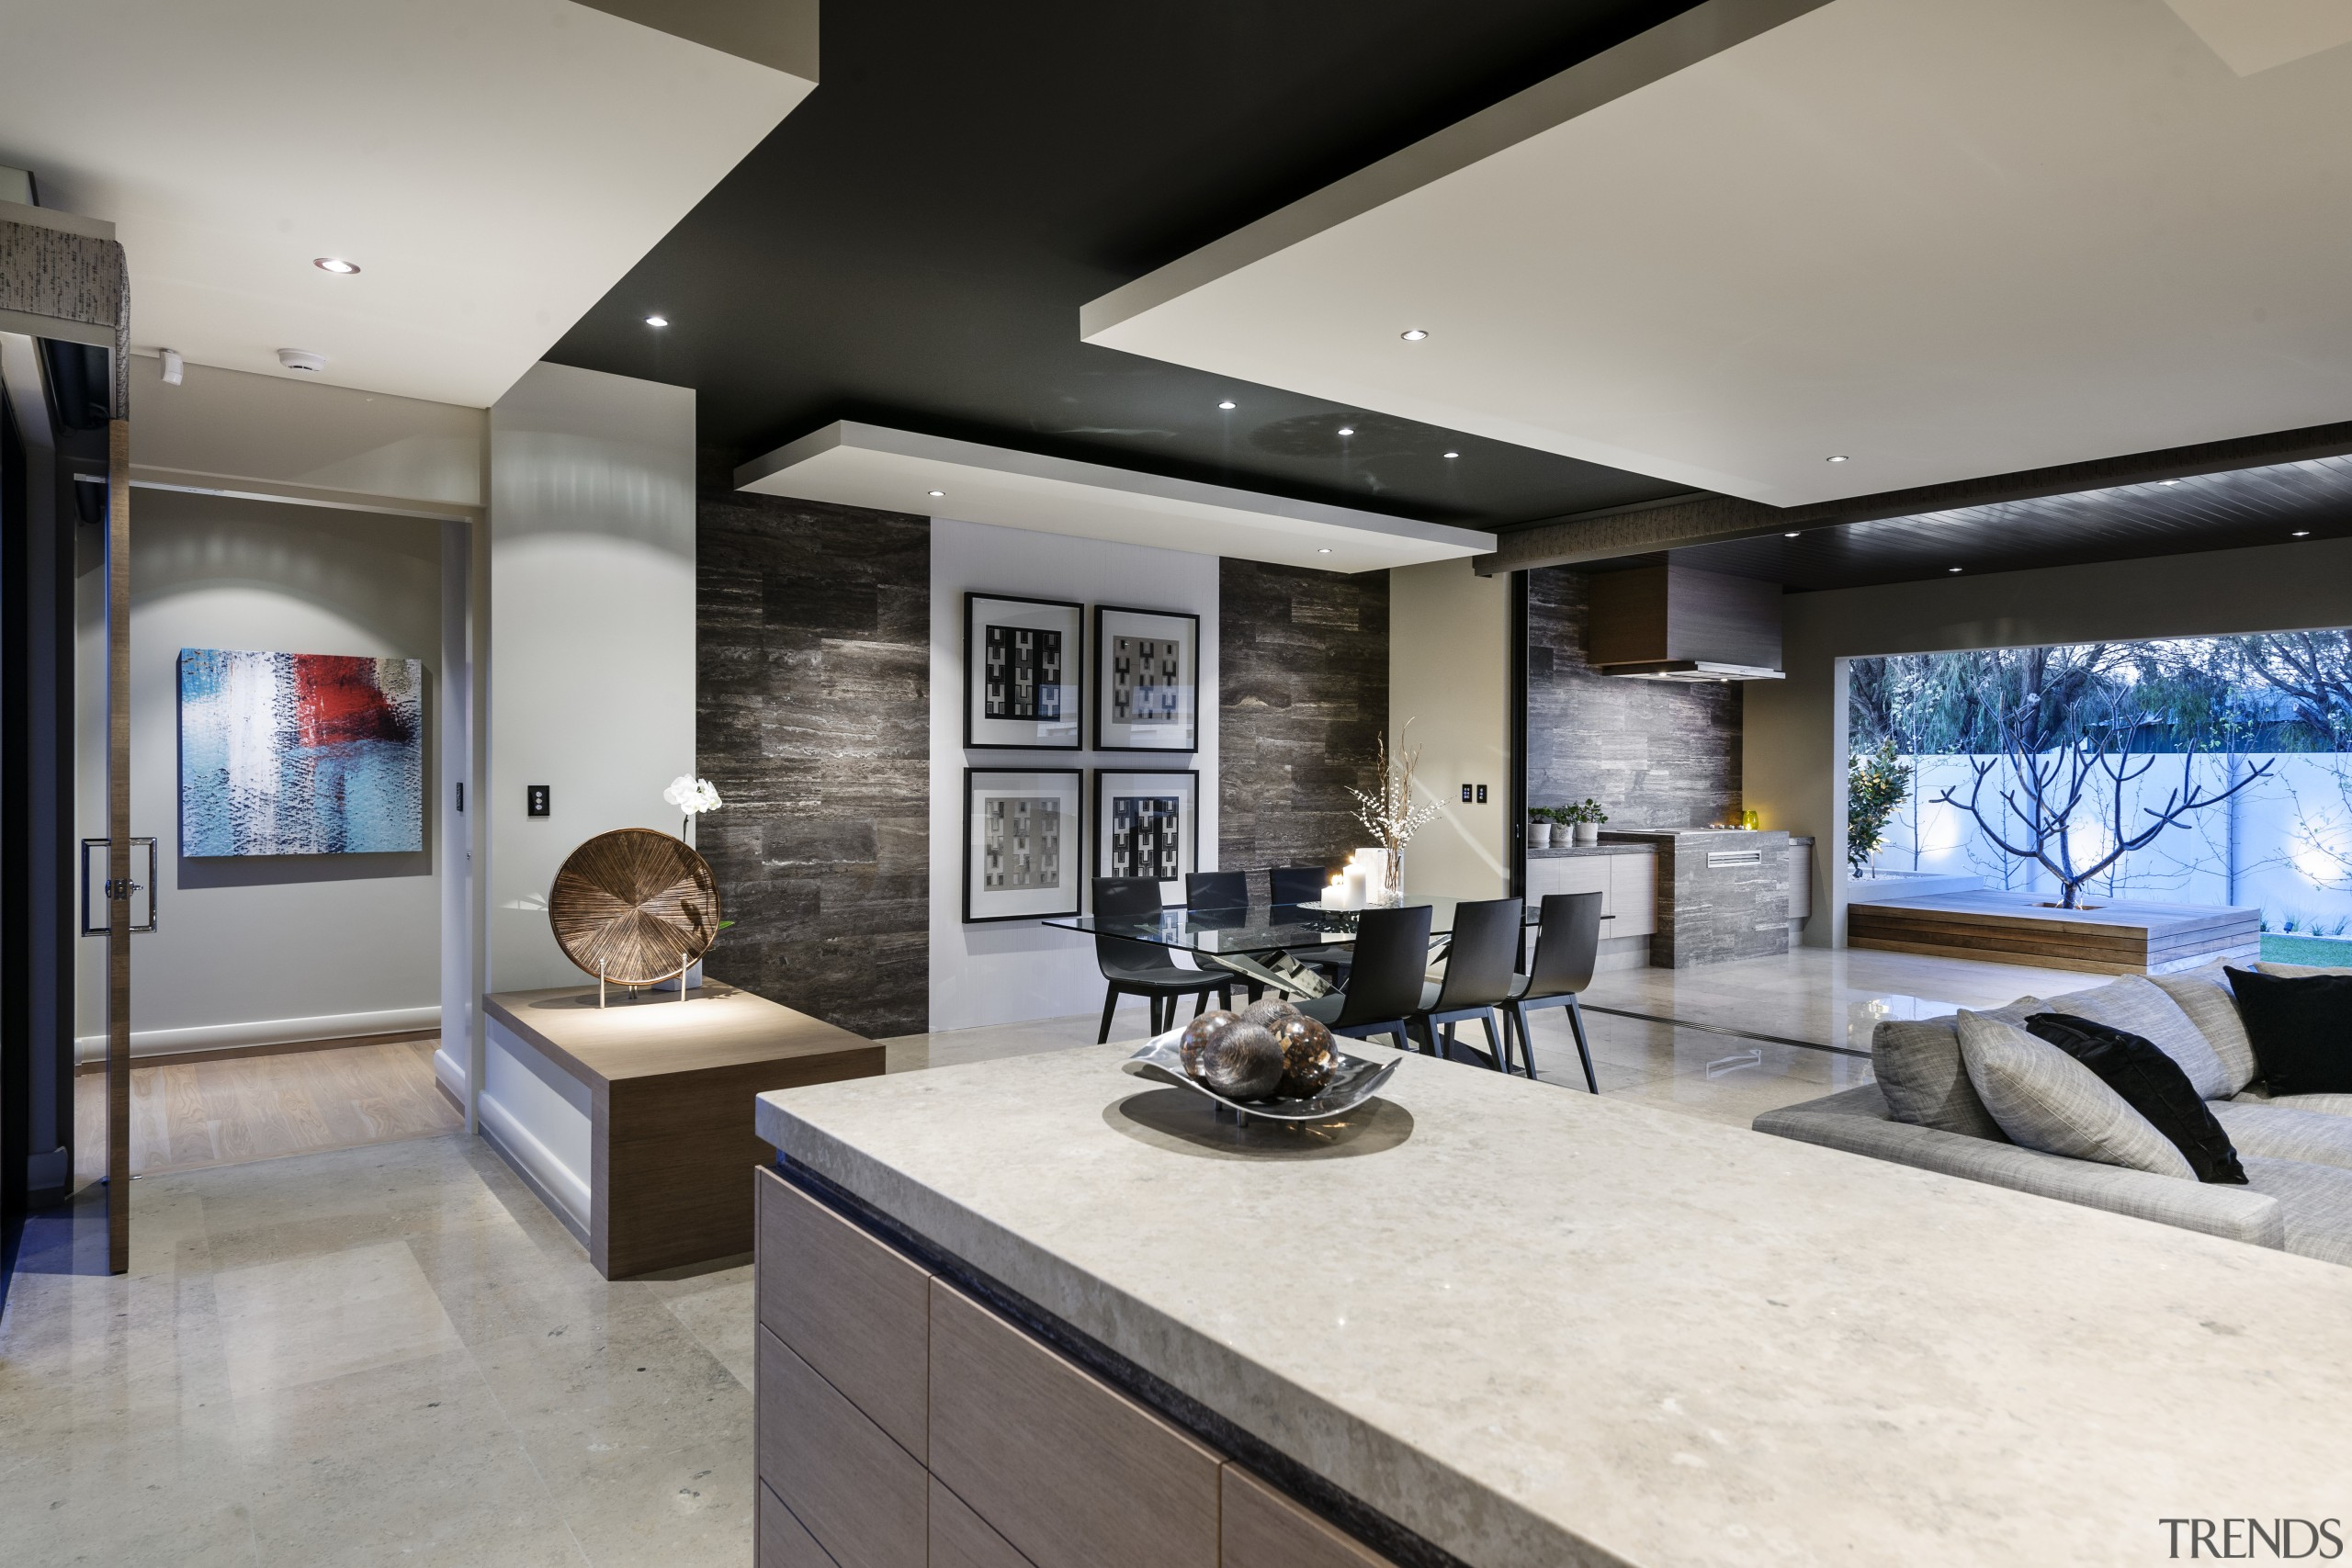 Kitchen connects with outdoor living spaces by shared interior design, living room, real estate, gray